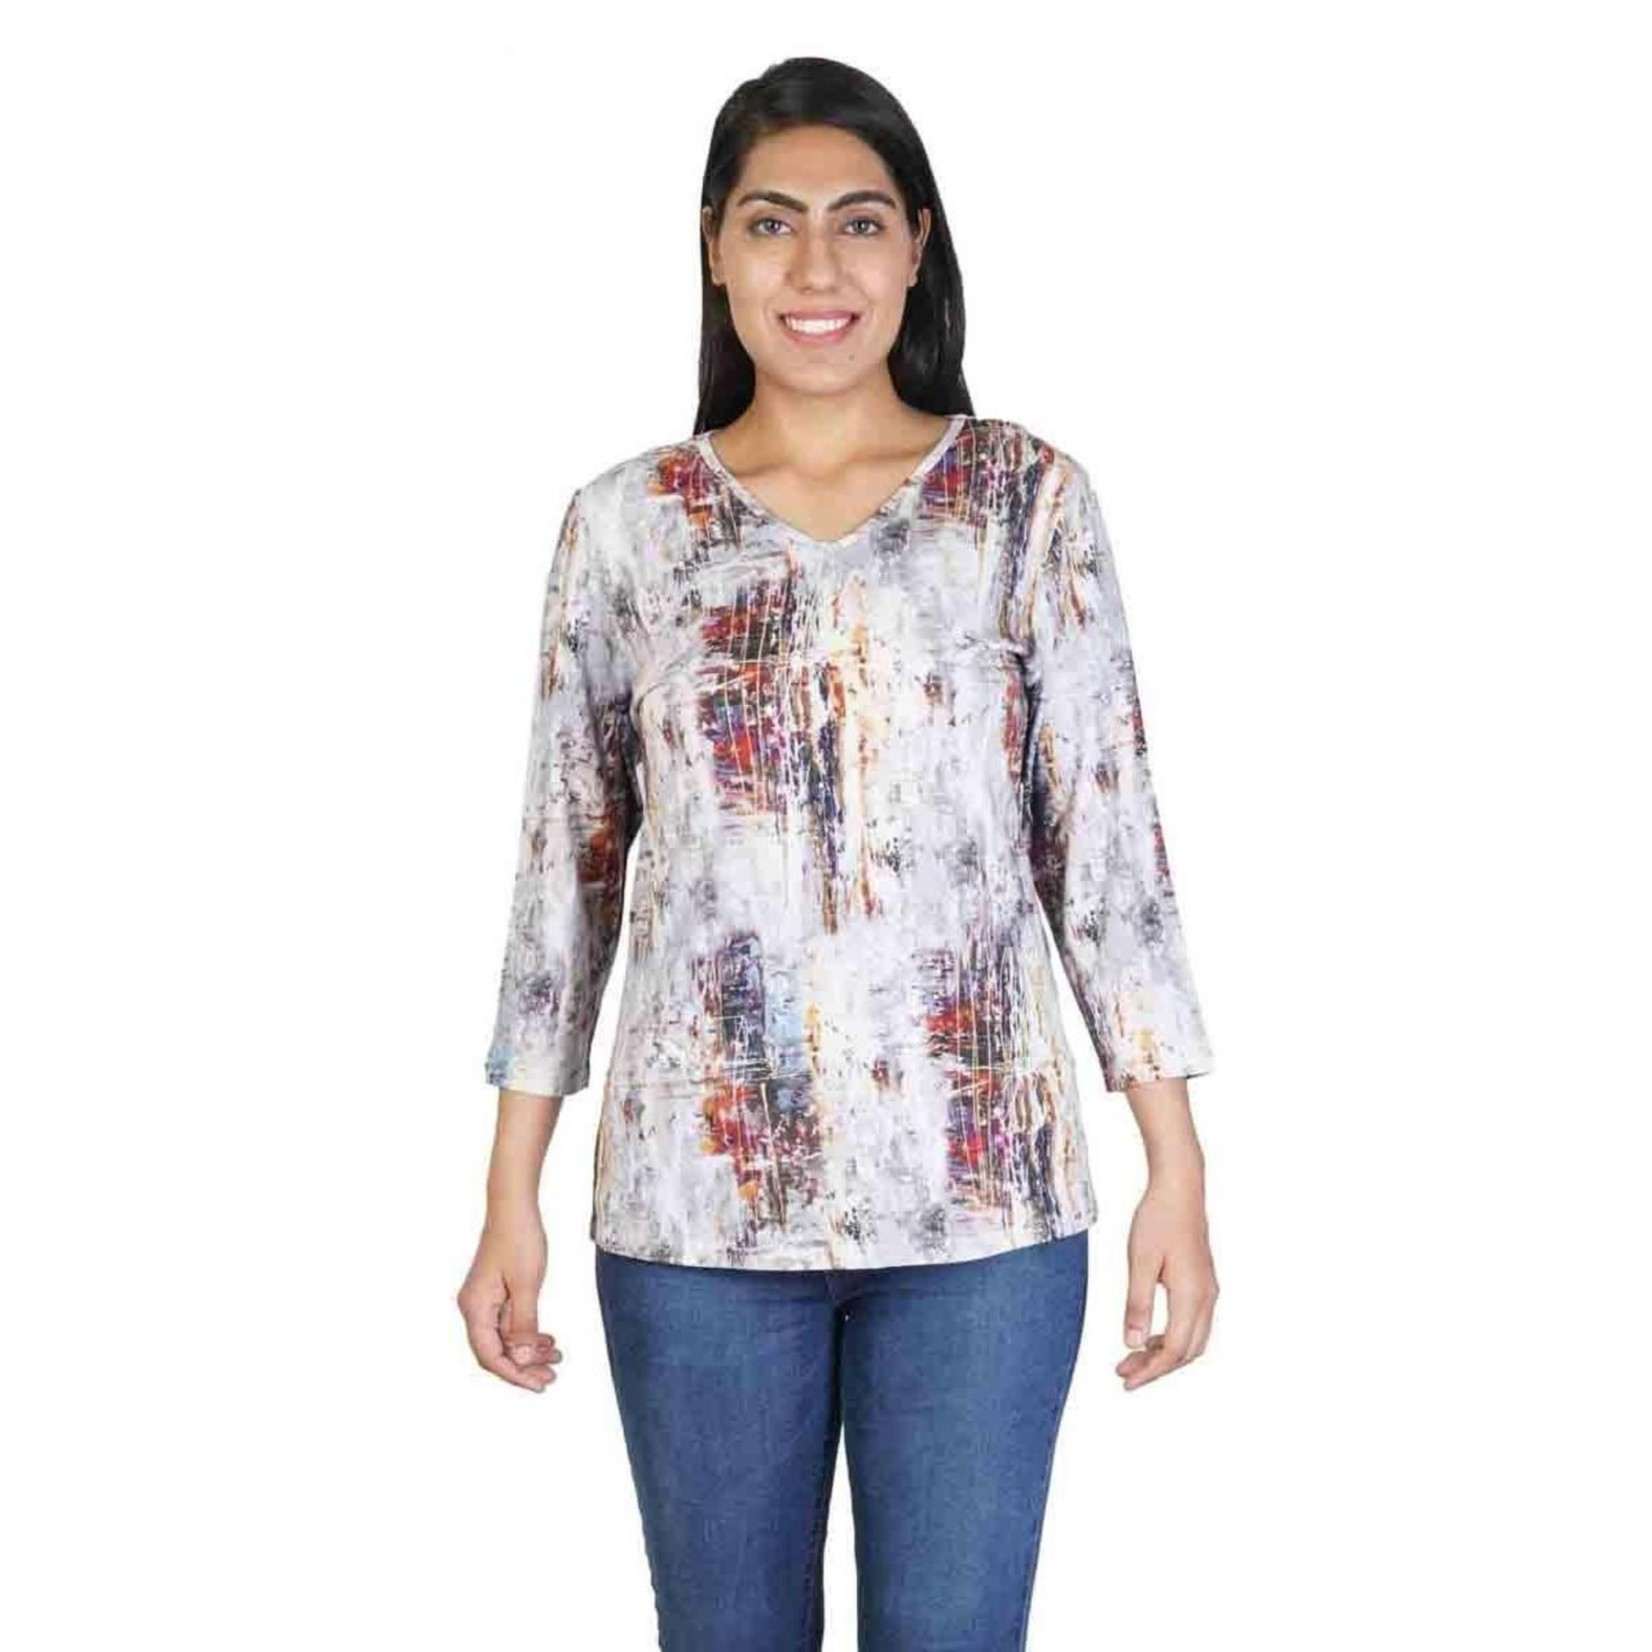 Parsley and Sage Coco Earthy Abstract 3/4 Sleeve Top